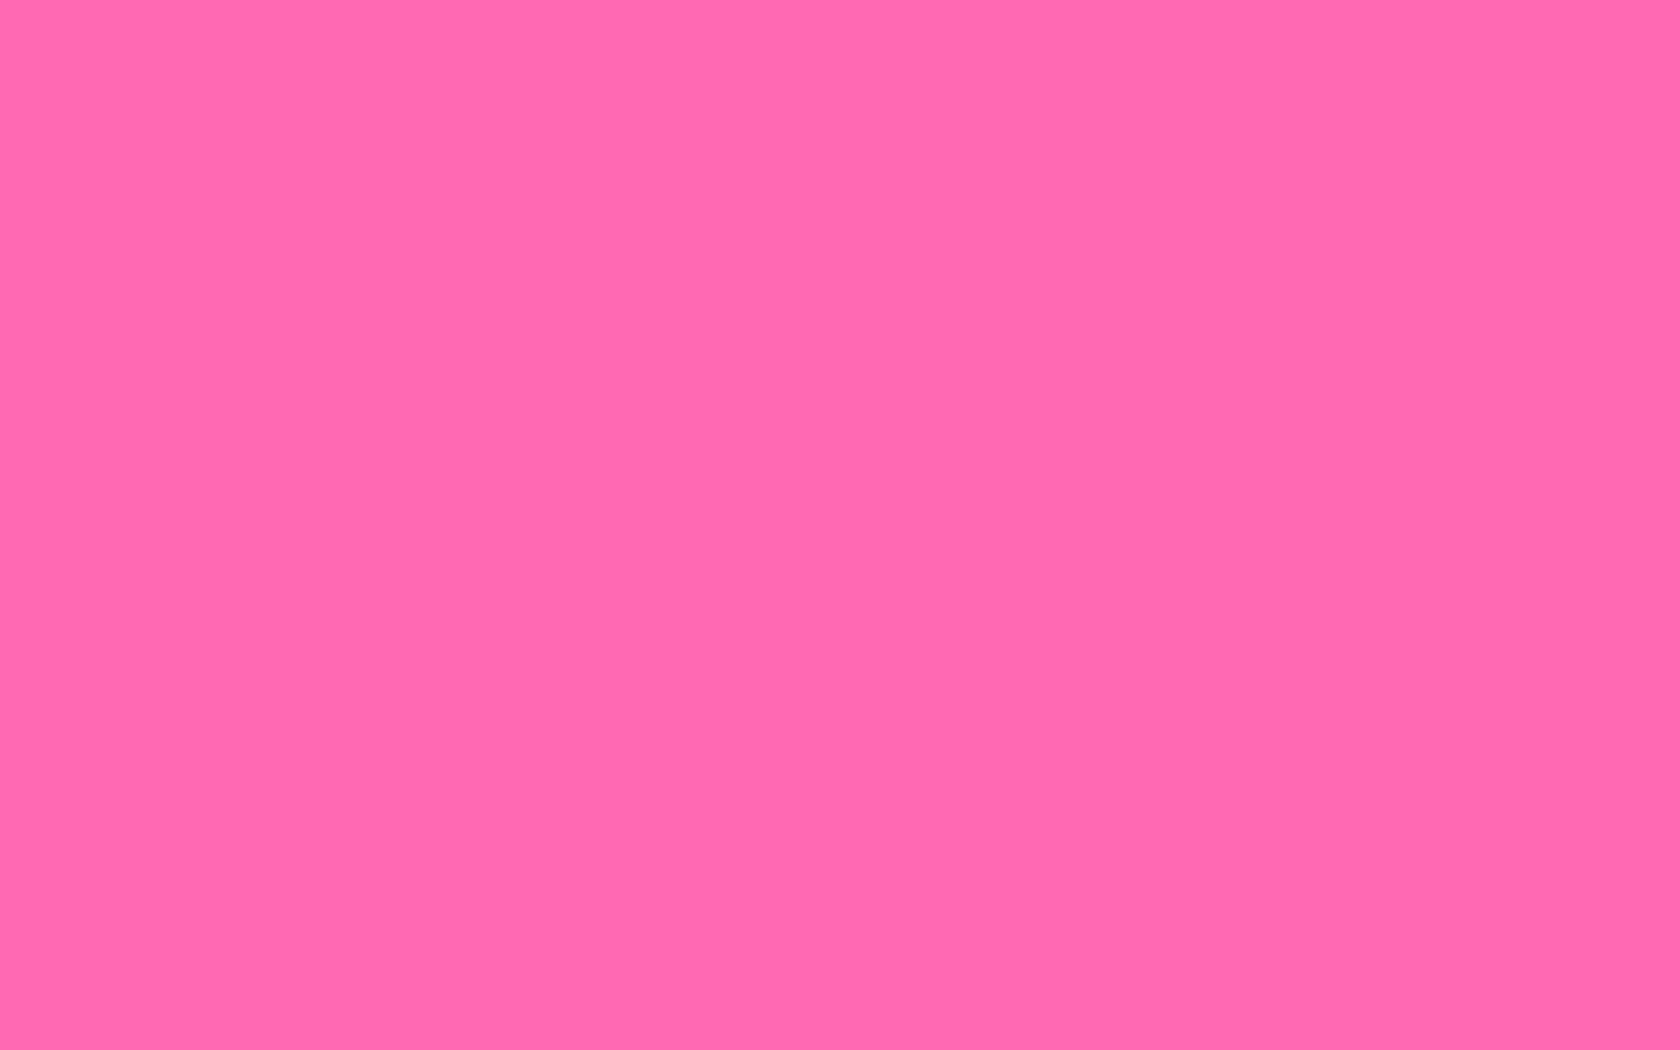 1680x1050 Hot Pink Solid Color Background